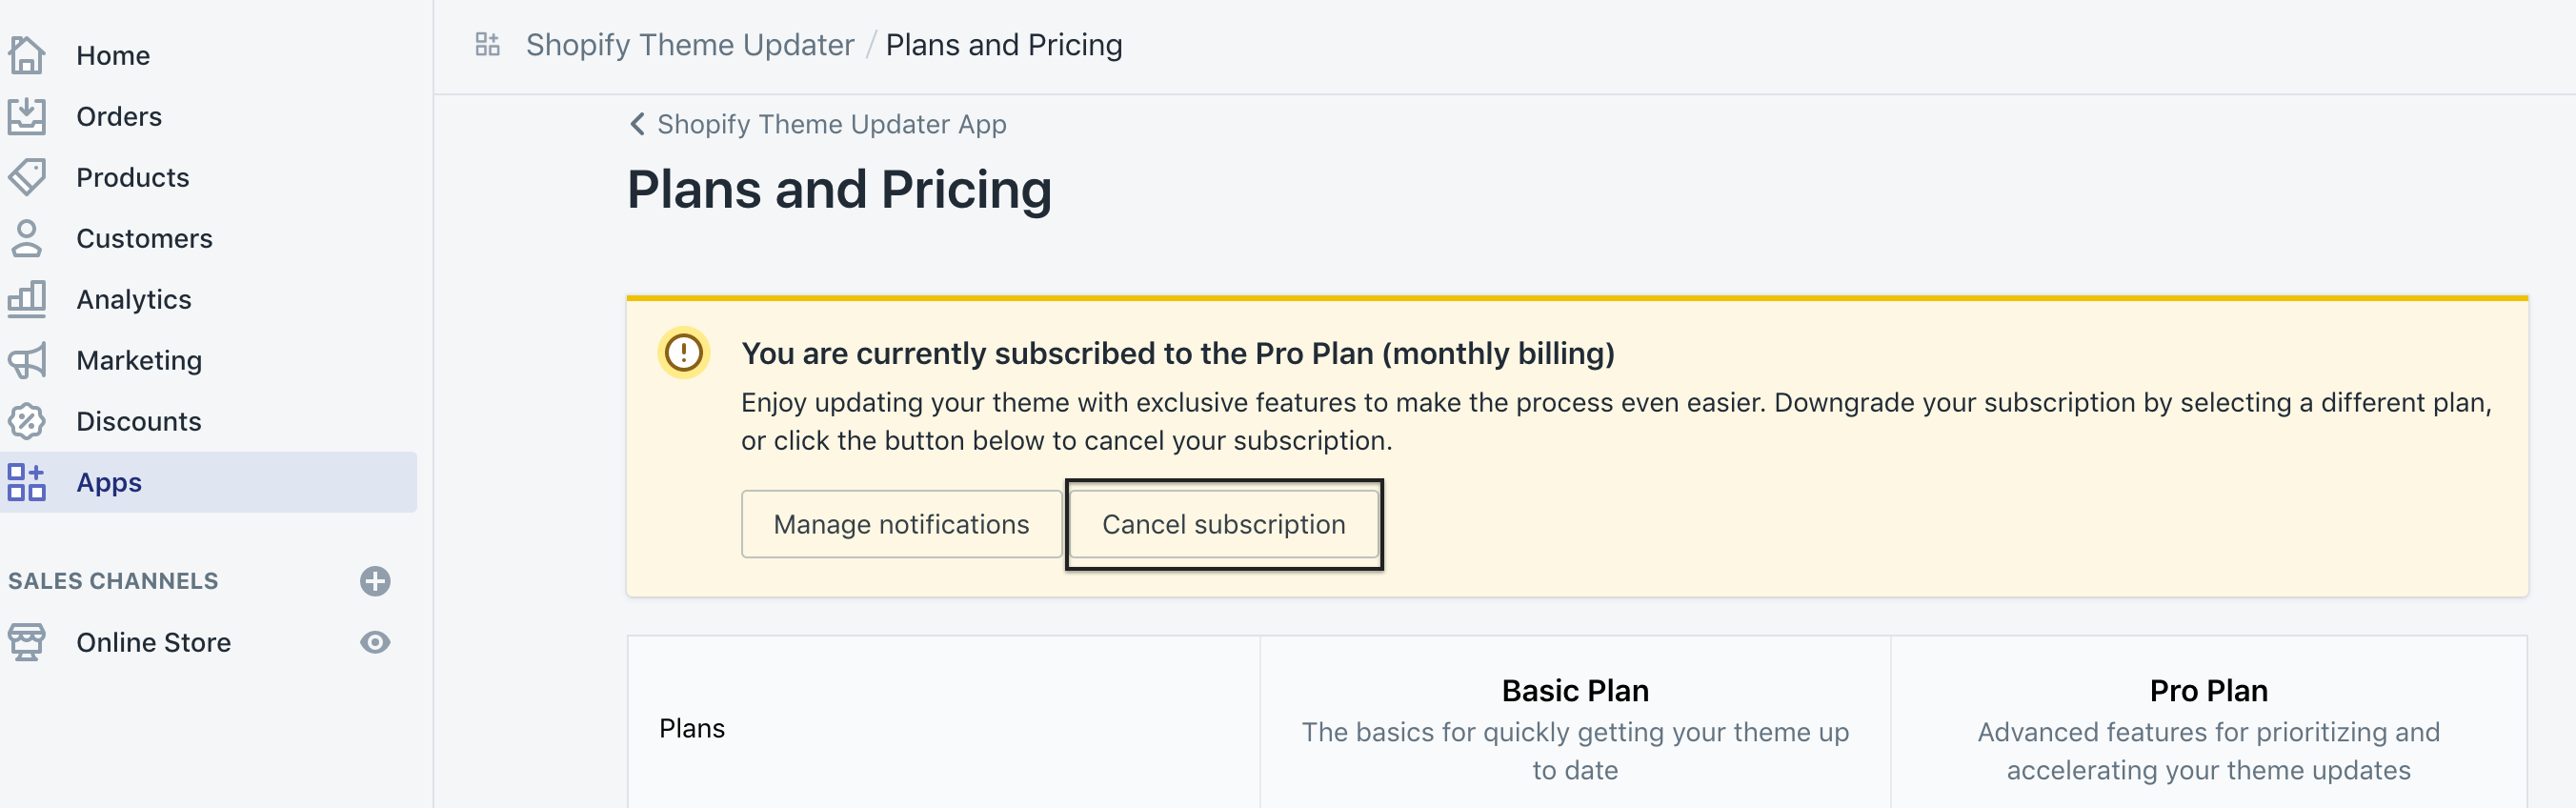 cancel-subscription.png